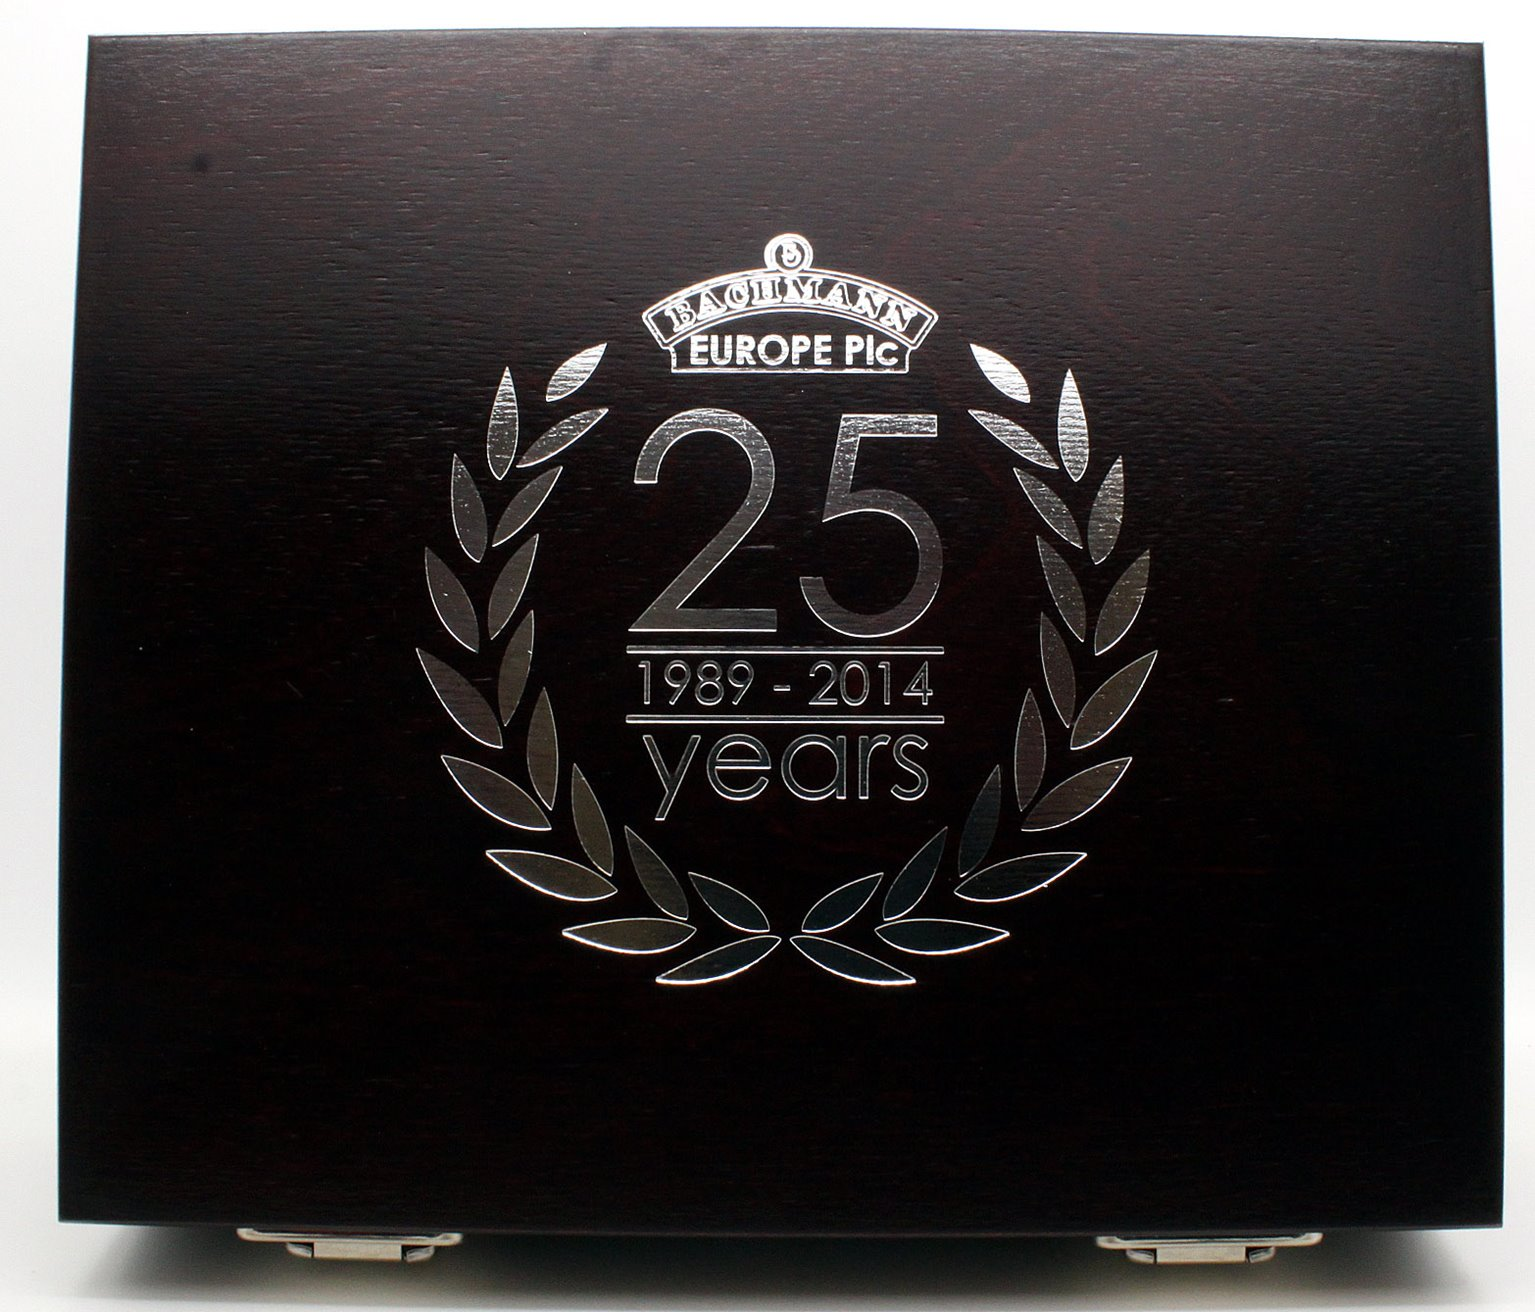 Limited Edition Silver Anniversary Twin Locomotive Wooden Box